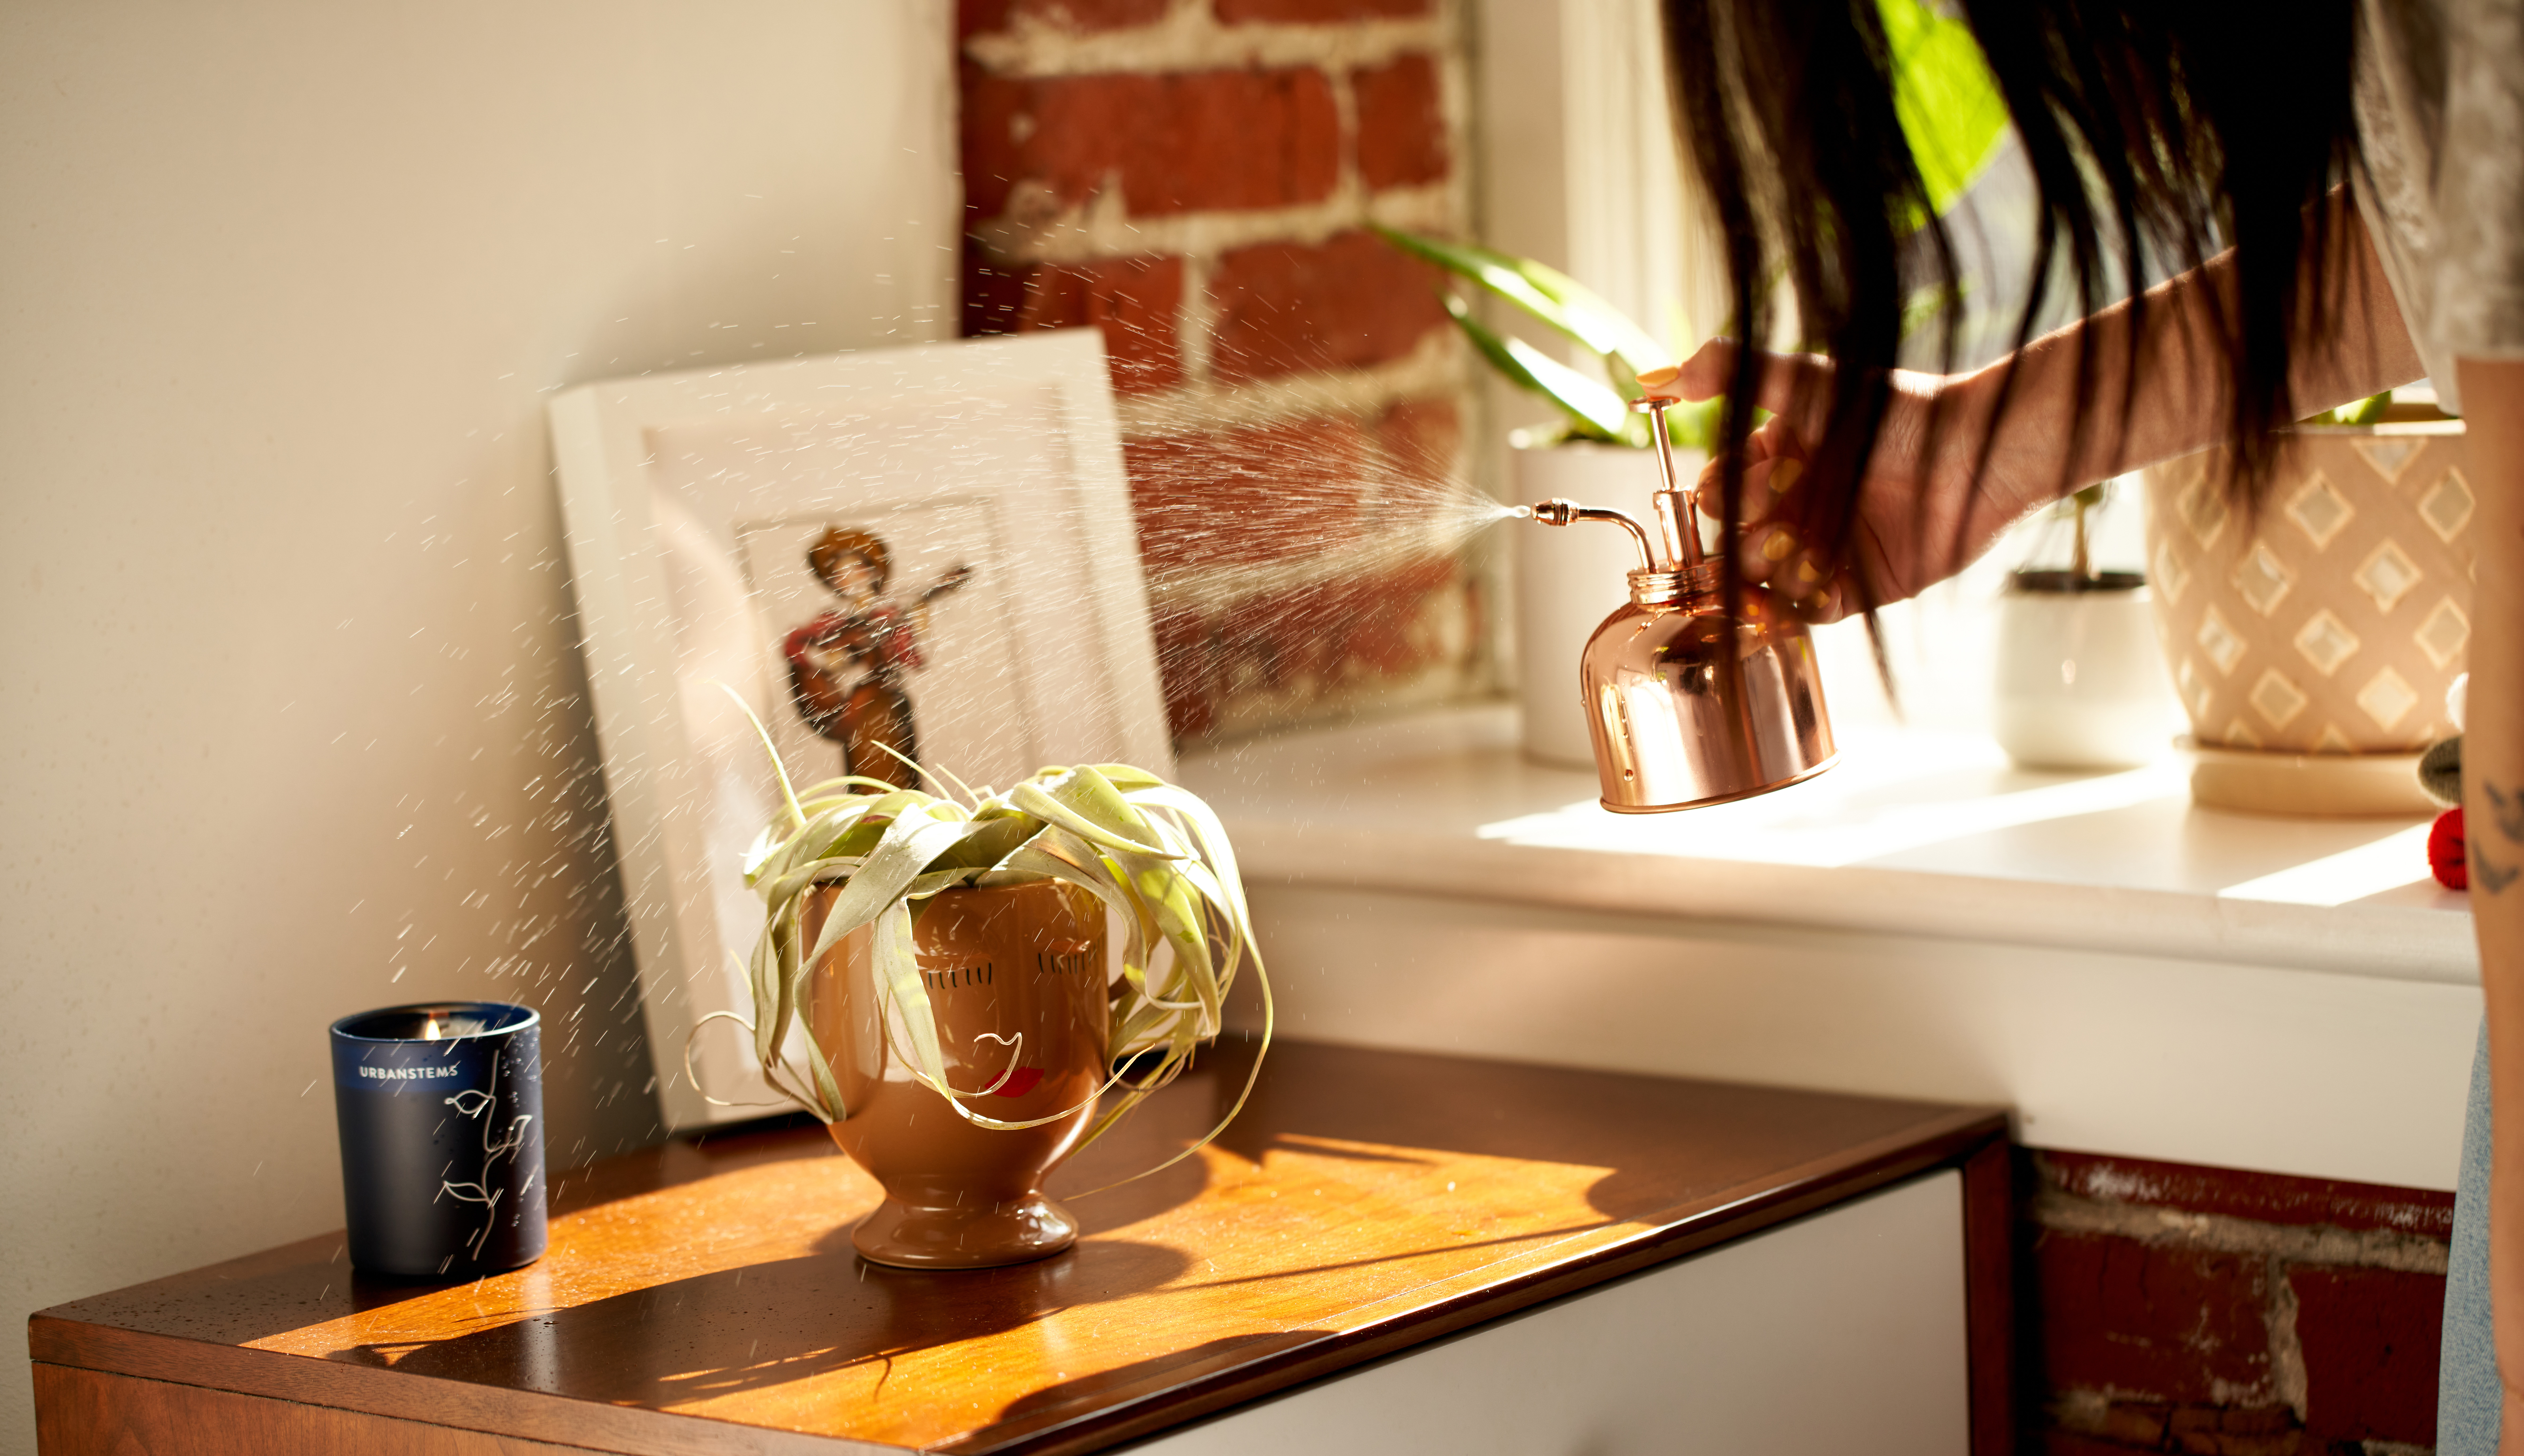 Hand misting air plant with water